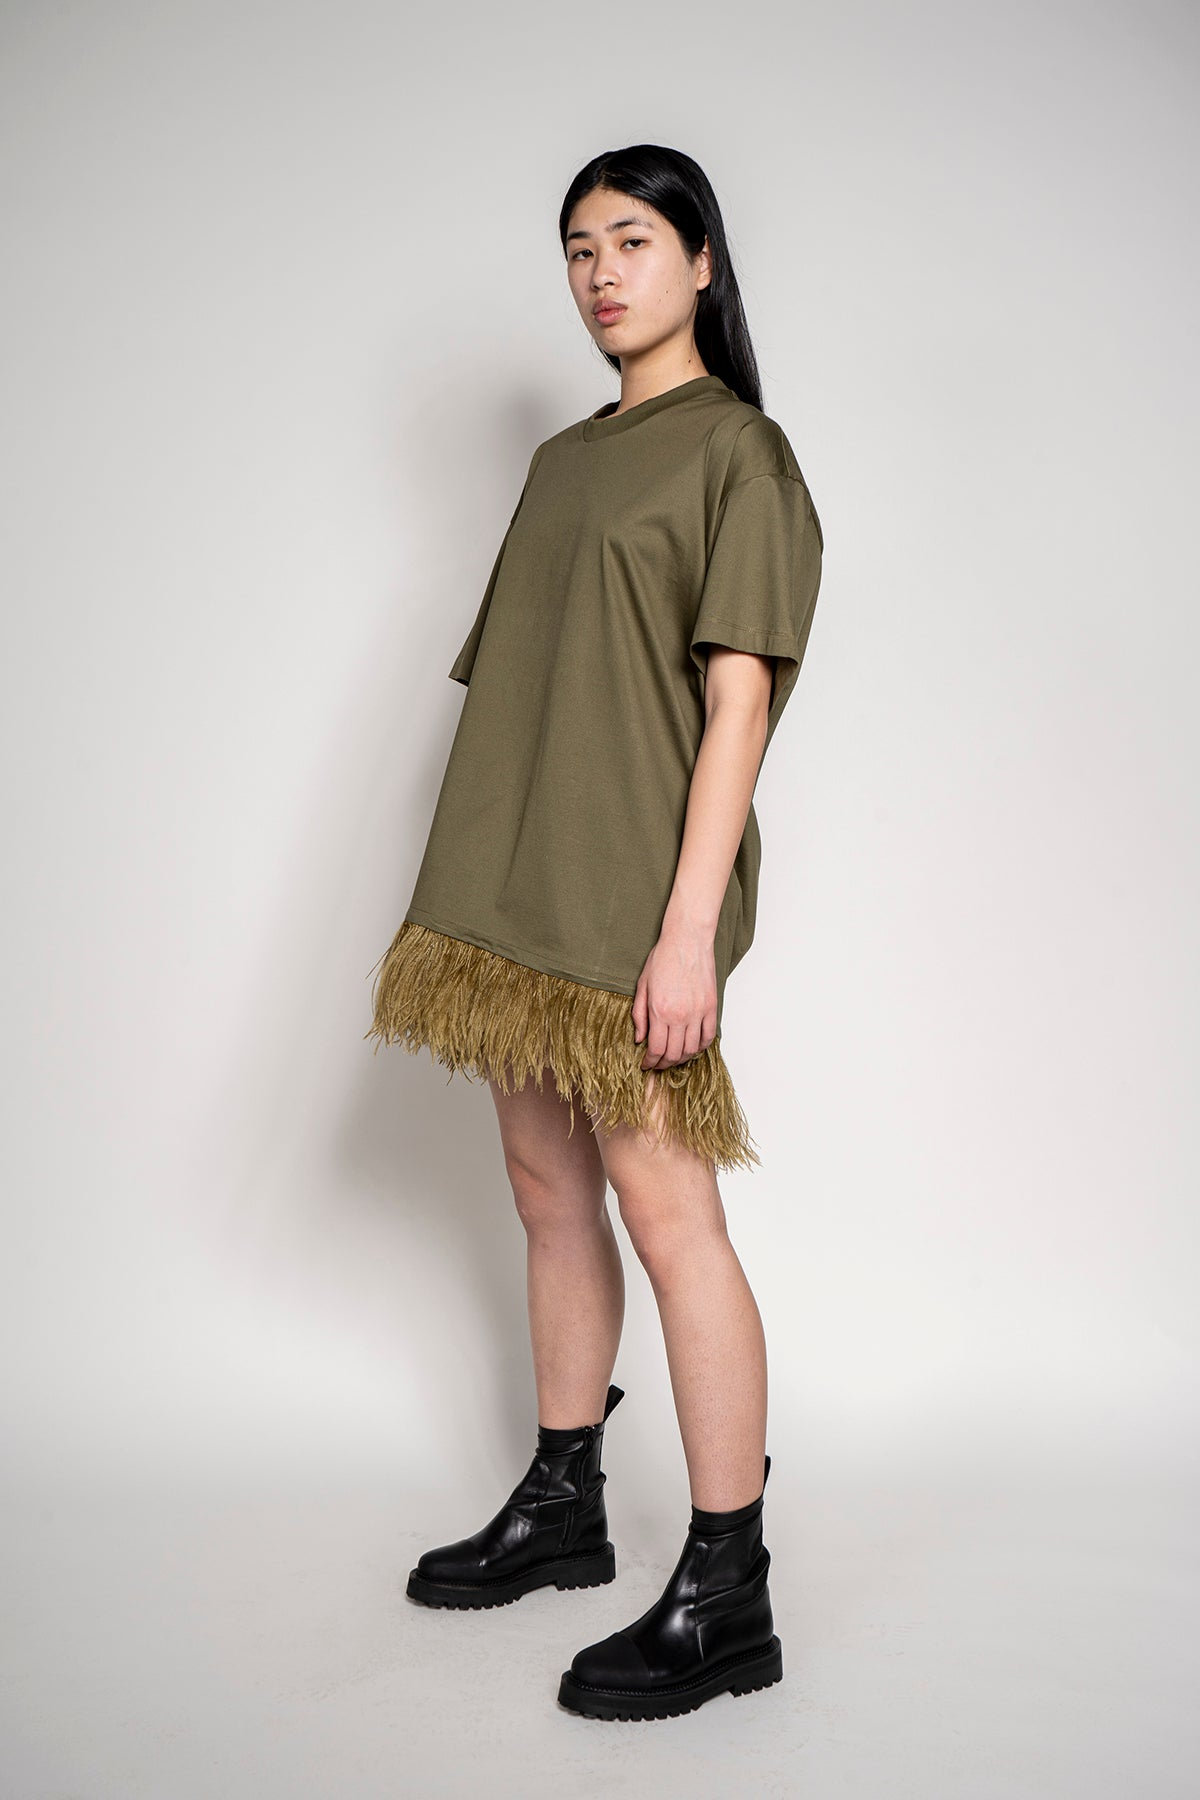 FEATHER HEM TOP IN KHAKI